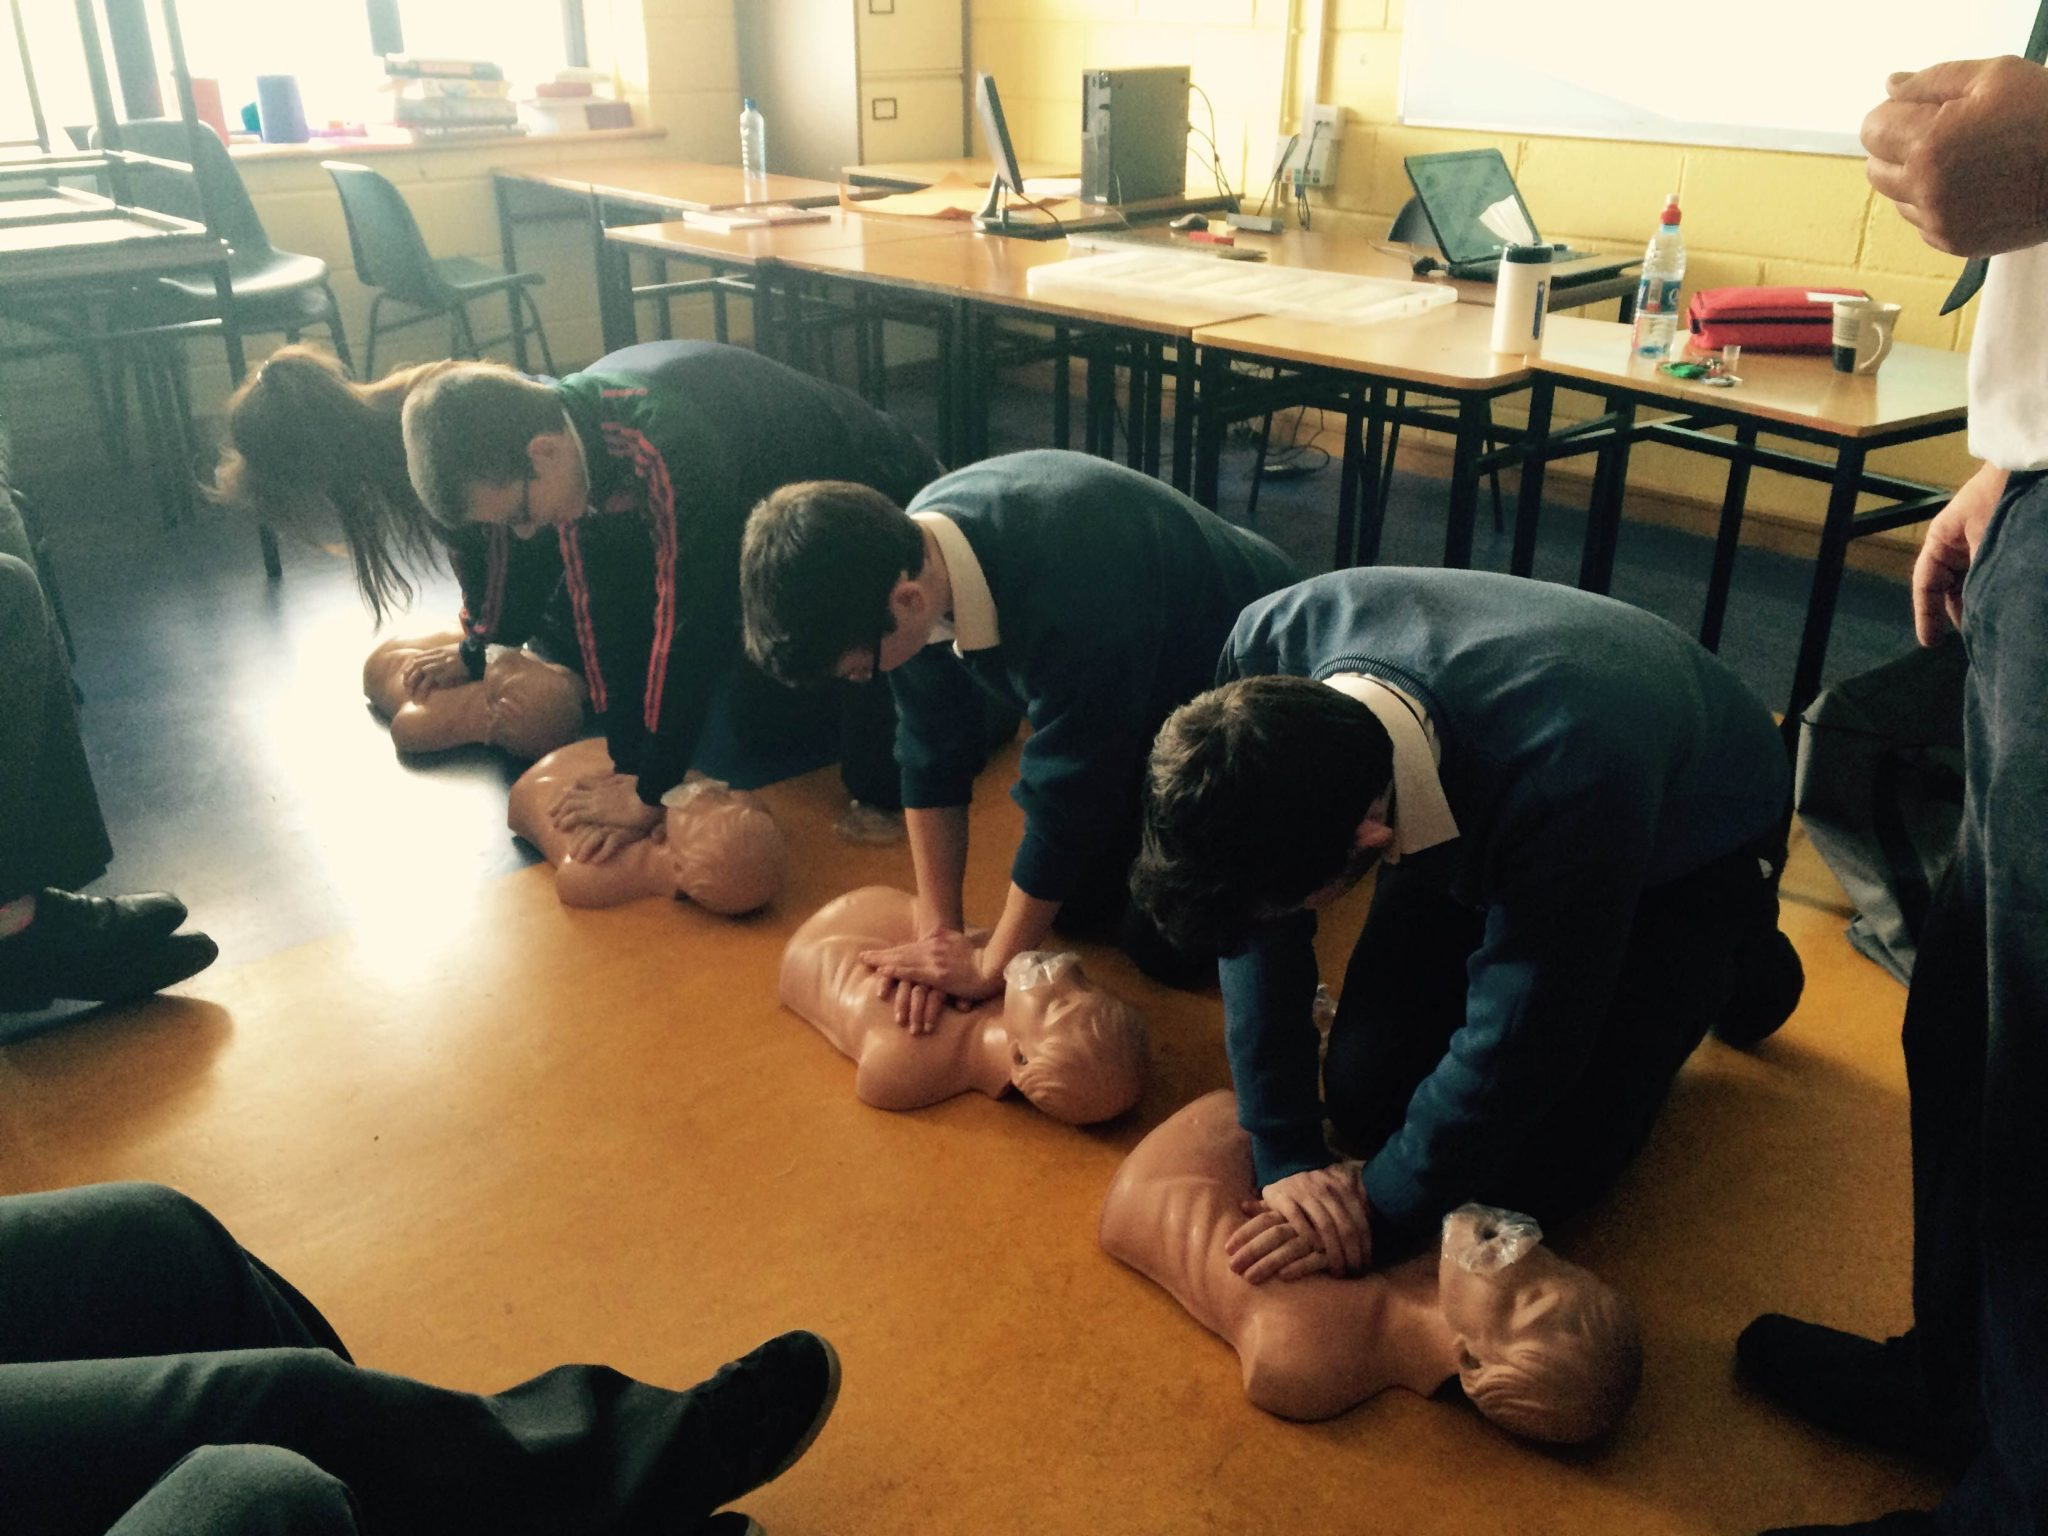 Desmond College students acquire competency in performing CPR as part of the Transition Year First Aid Certificate: May 2015